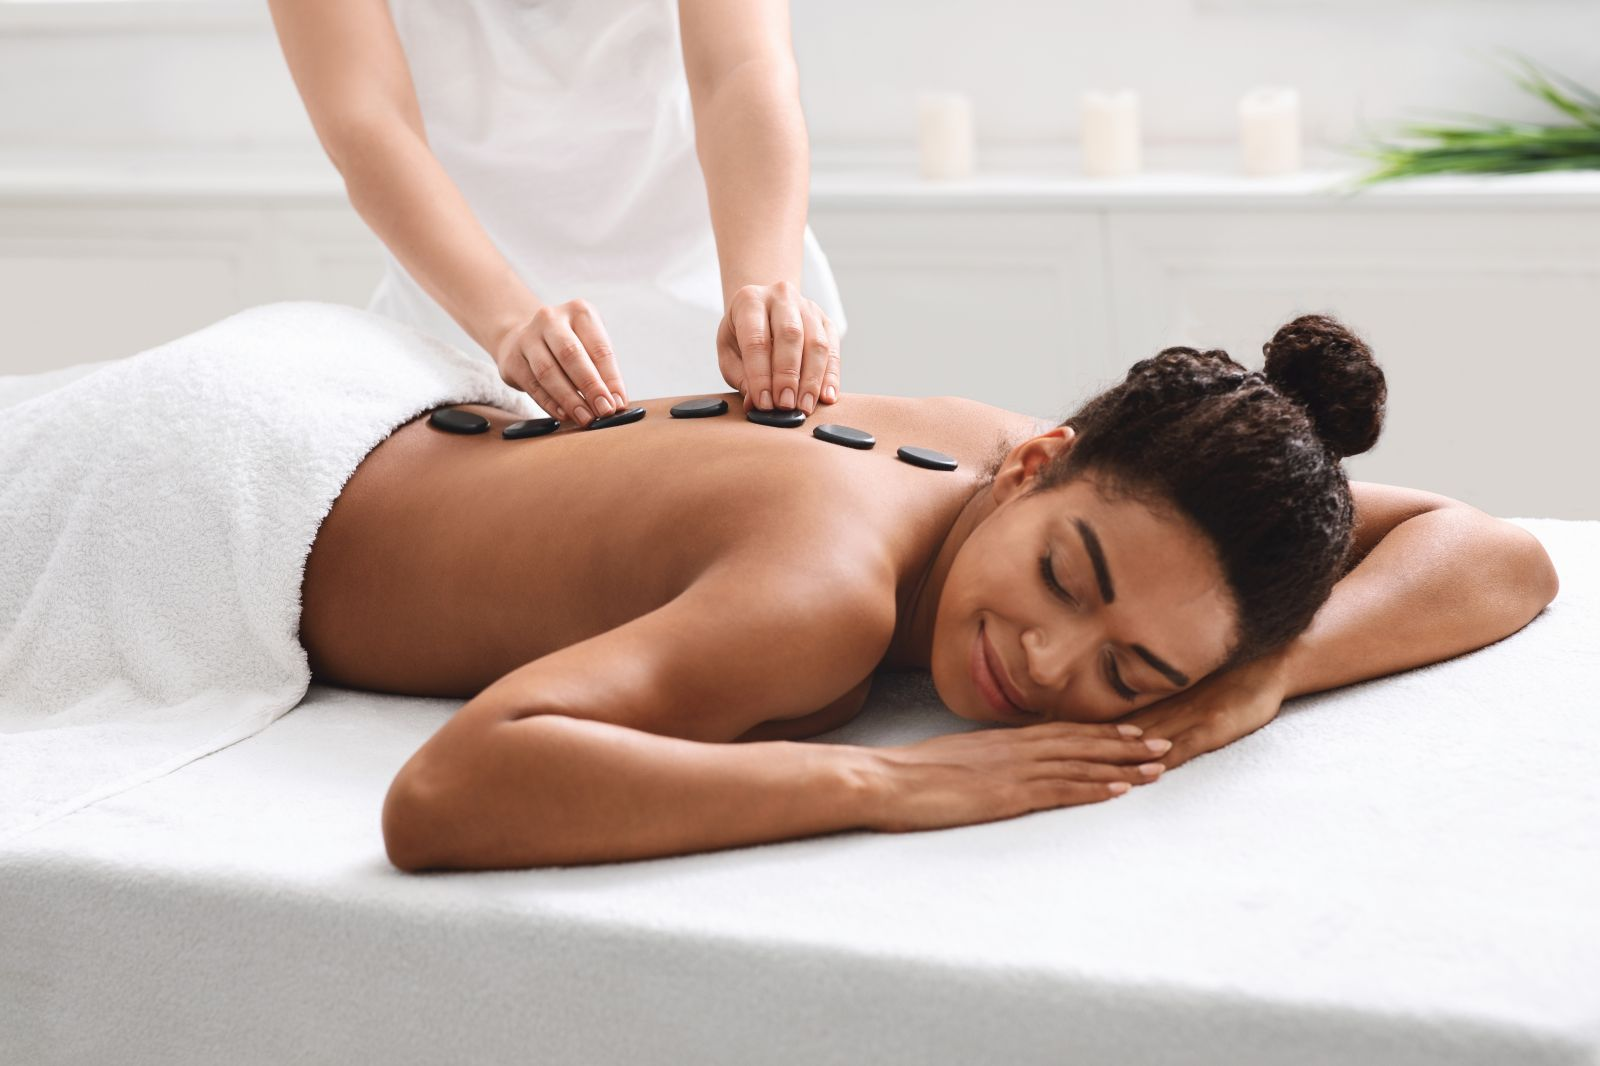 4 Ways Massage Therapy Can Benefit Your Health